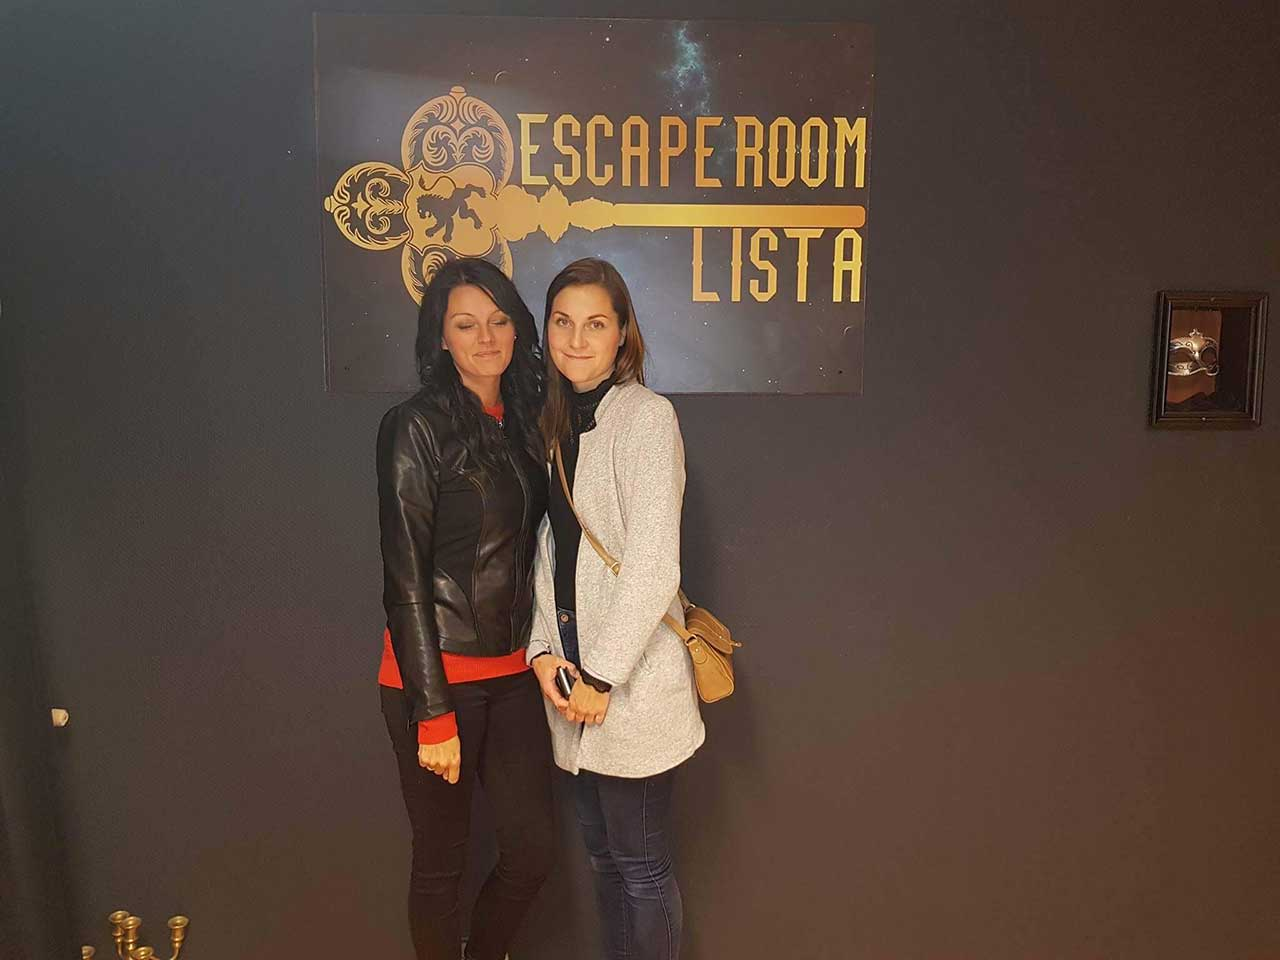 Lapark-Escape-room-81